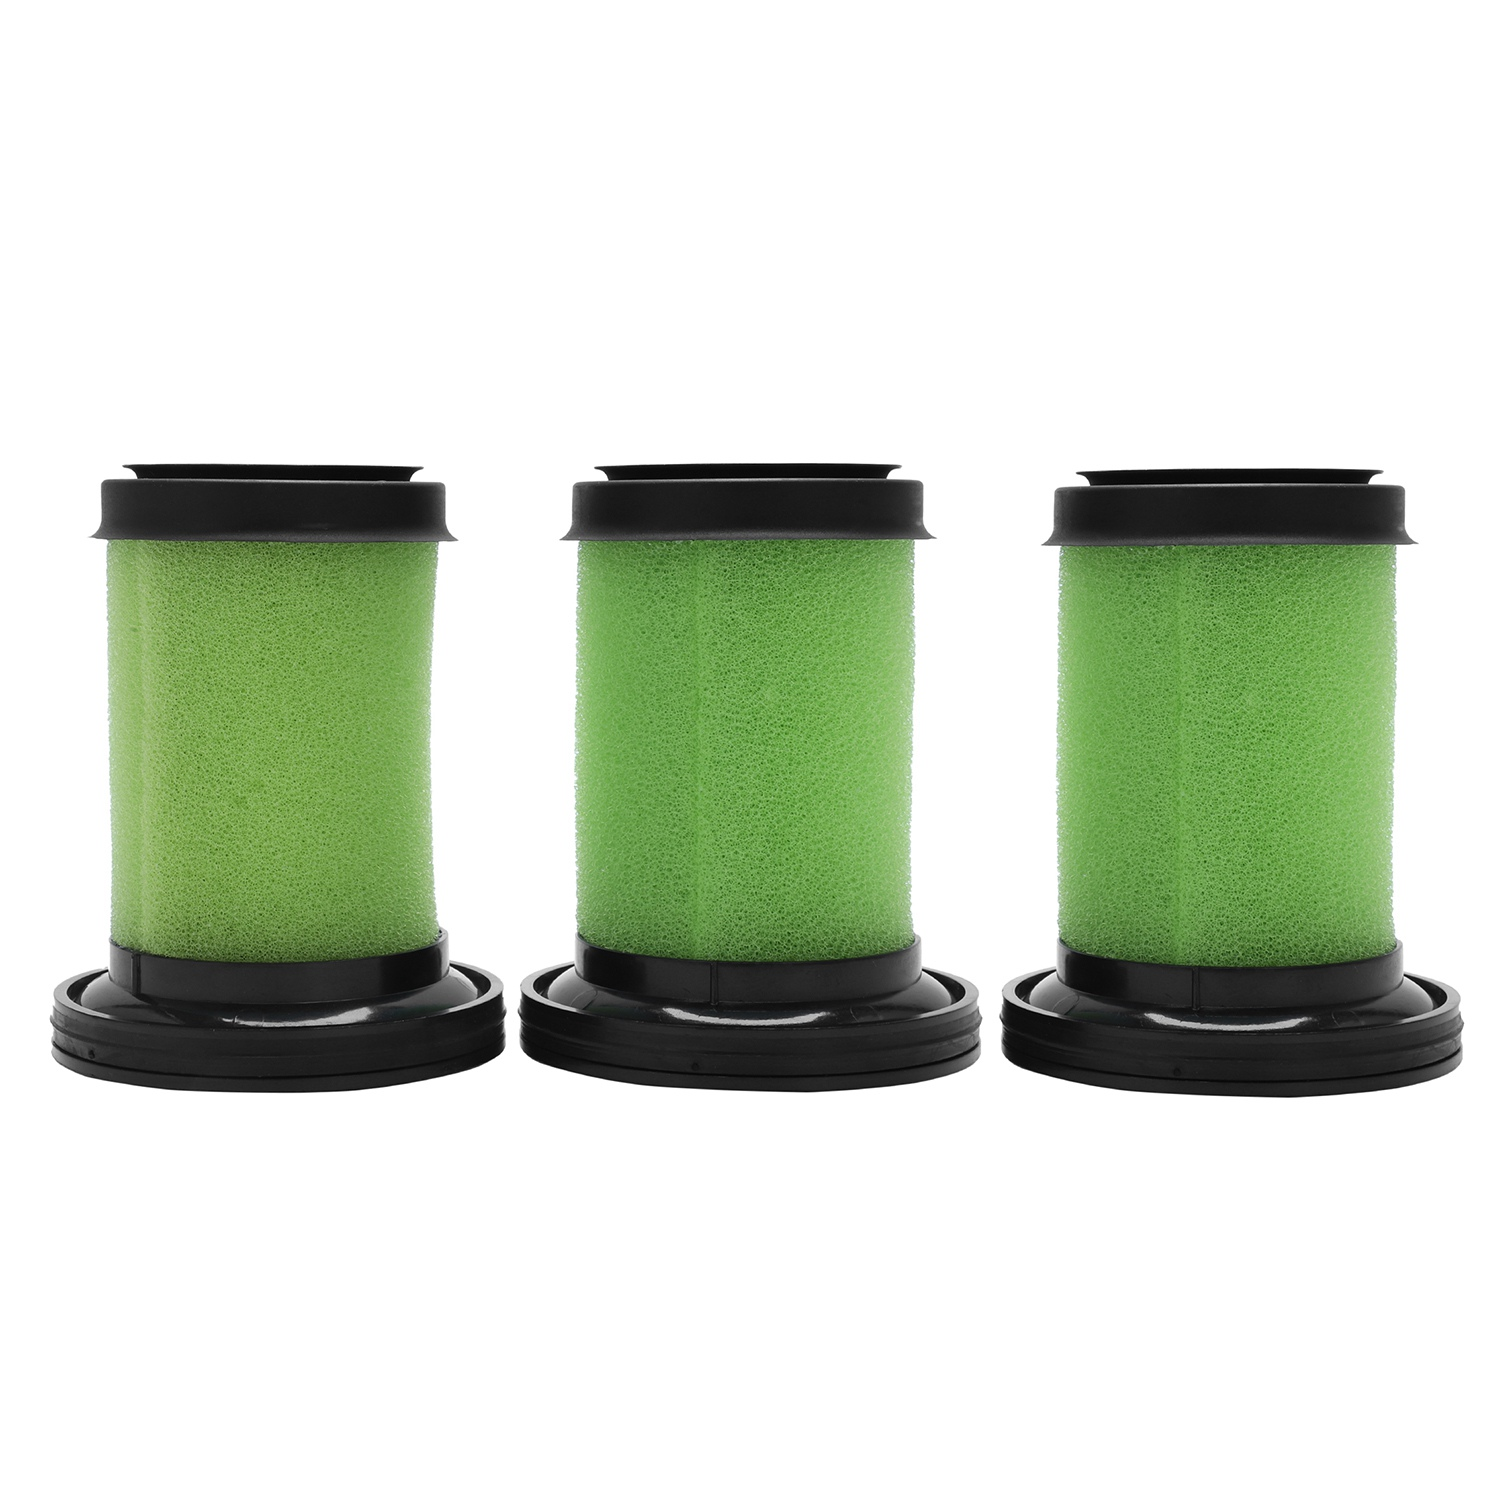 Hot Sale Washable Foam Filters for GTech Multi Cordless Vacuum Cleaner (Green/Black, Pack of 3) vacuum pump inlet filters f007 7 rc3 out diameter of 340mm high is 360mm